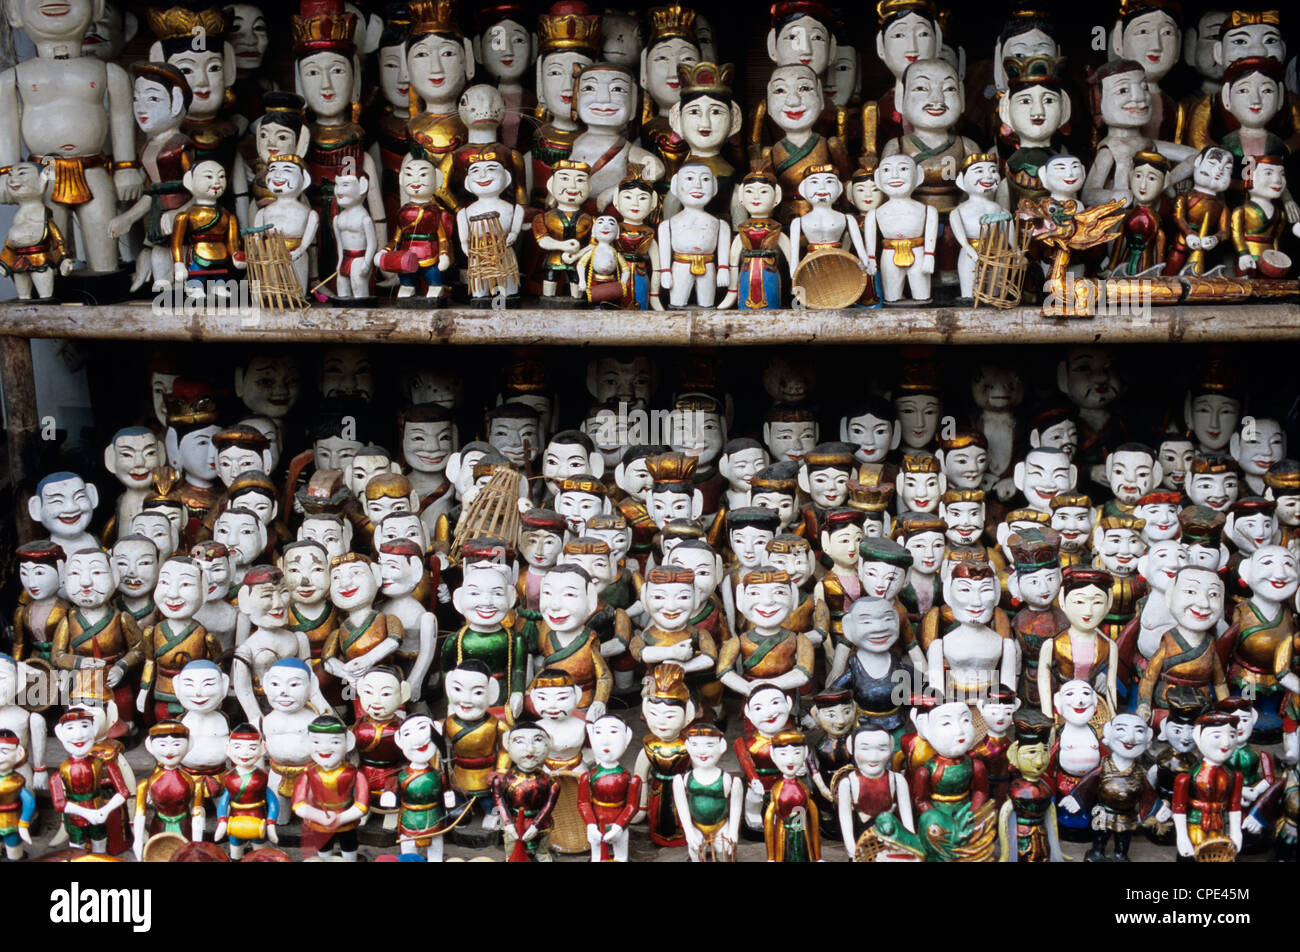 Collection of water puppets, Hanoi, Vietnam, Indochina, Southeast Asia, Asia - Stock Image